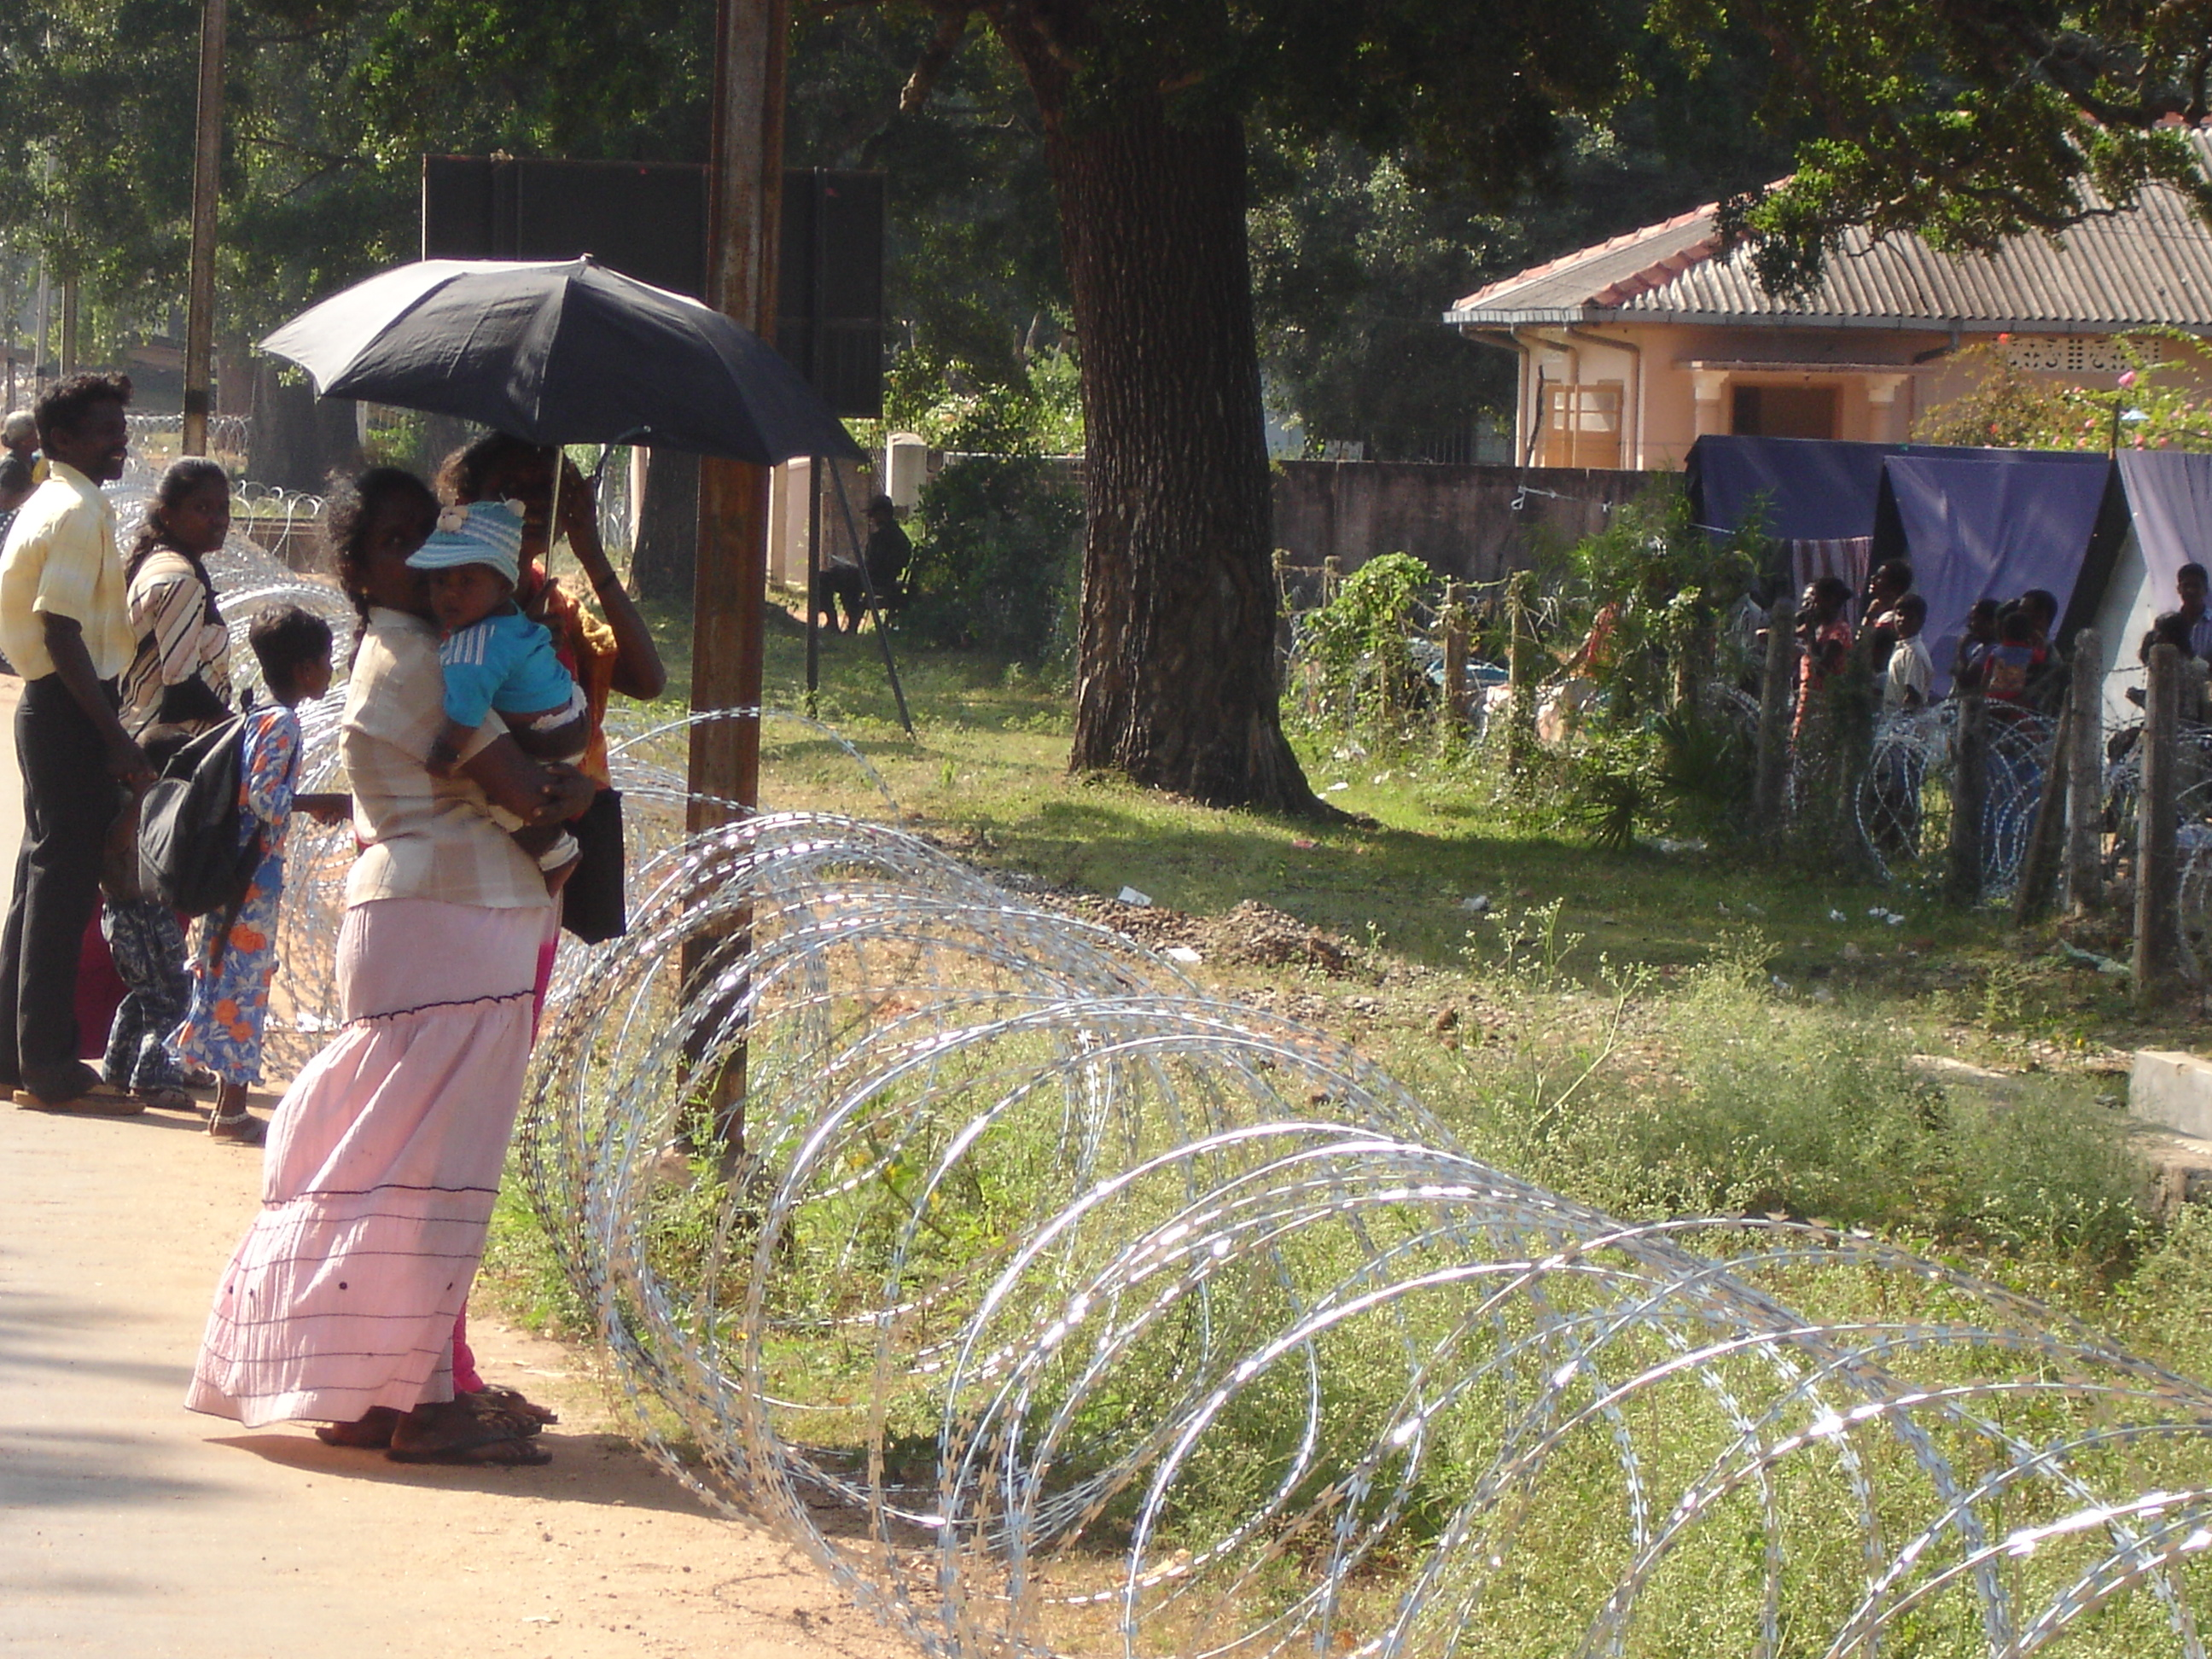 In the northern Sri Lankan town of Vanuniya, a young Tamil woman attempts to speak to family members now being interned at a displaced persons transit site through barbed wire. More than 30,000 Tamil civilians fled to government-control territory in early